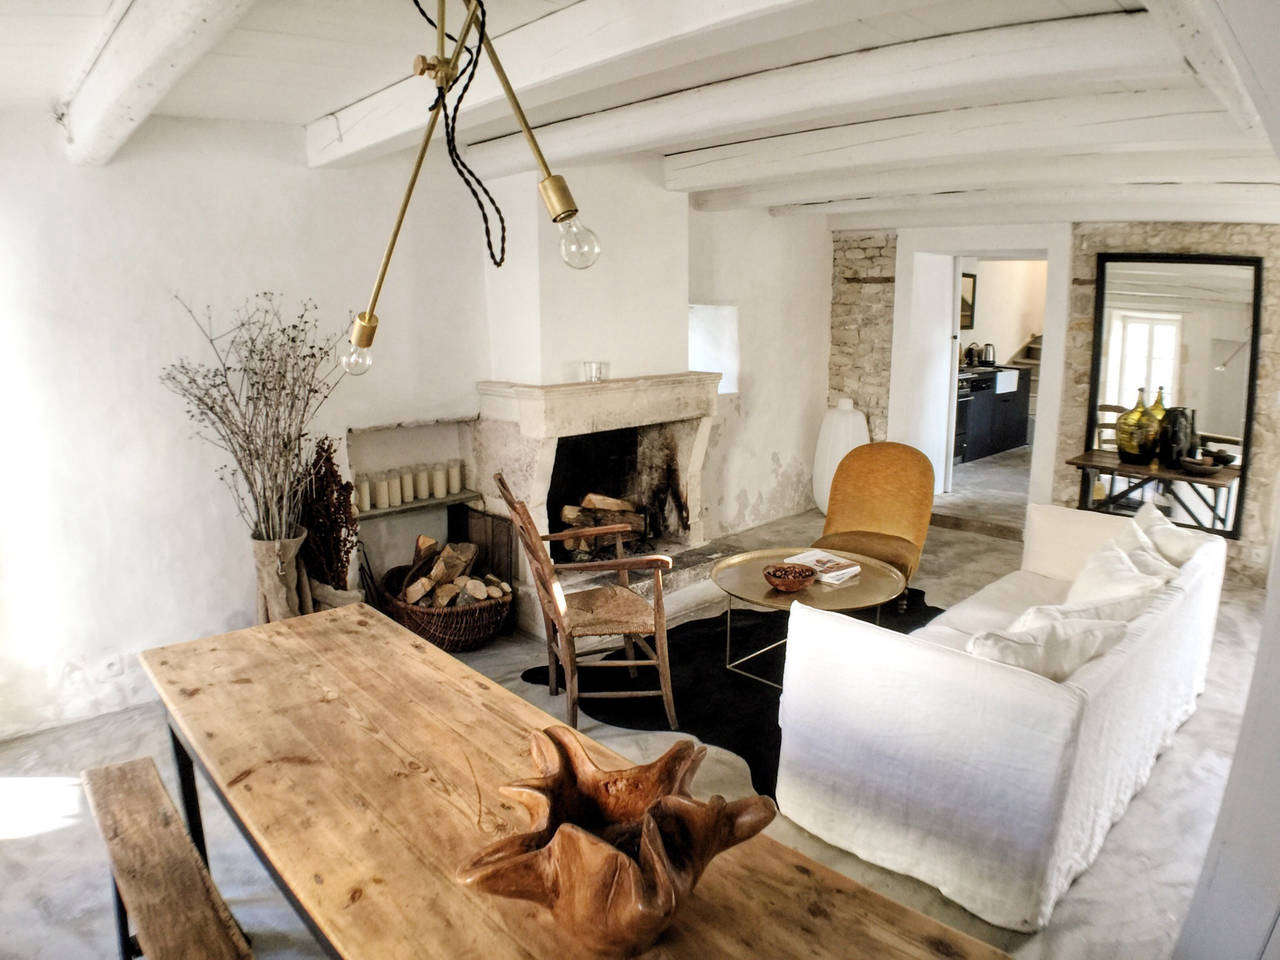 Merveilleux Living Room Furniture At La Maison Du Figuier Is Centered Around The Old  Fireplace While Extra